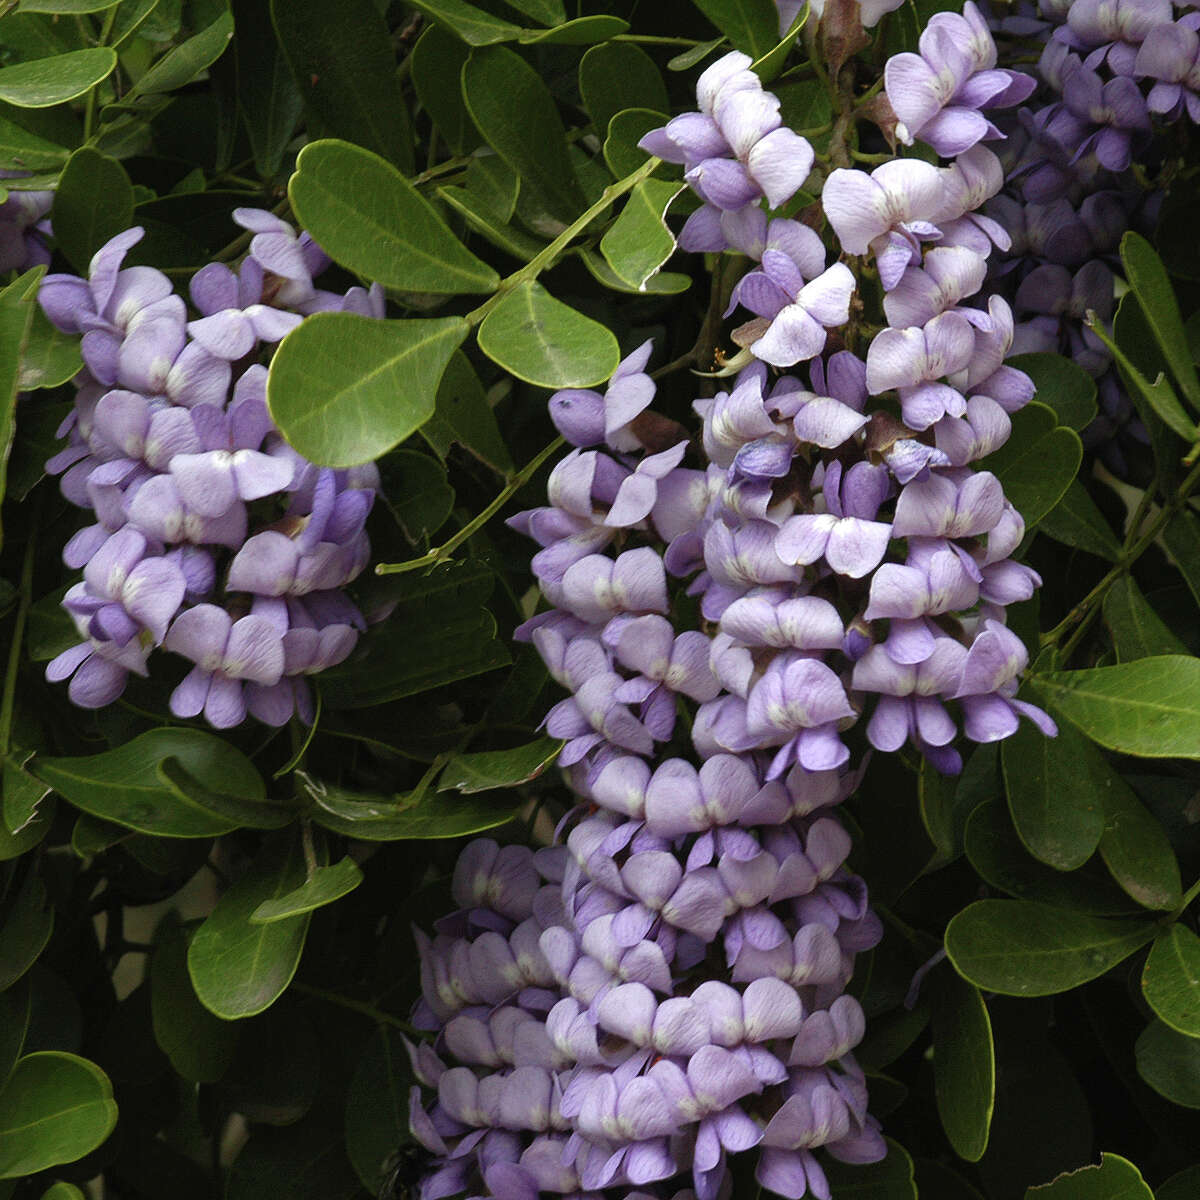 Mountain laurels are typically hardy plants. However, a vascular disease in trunks can cause their demise.